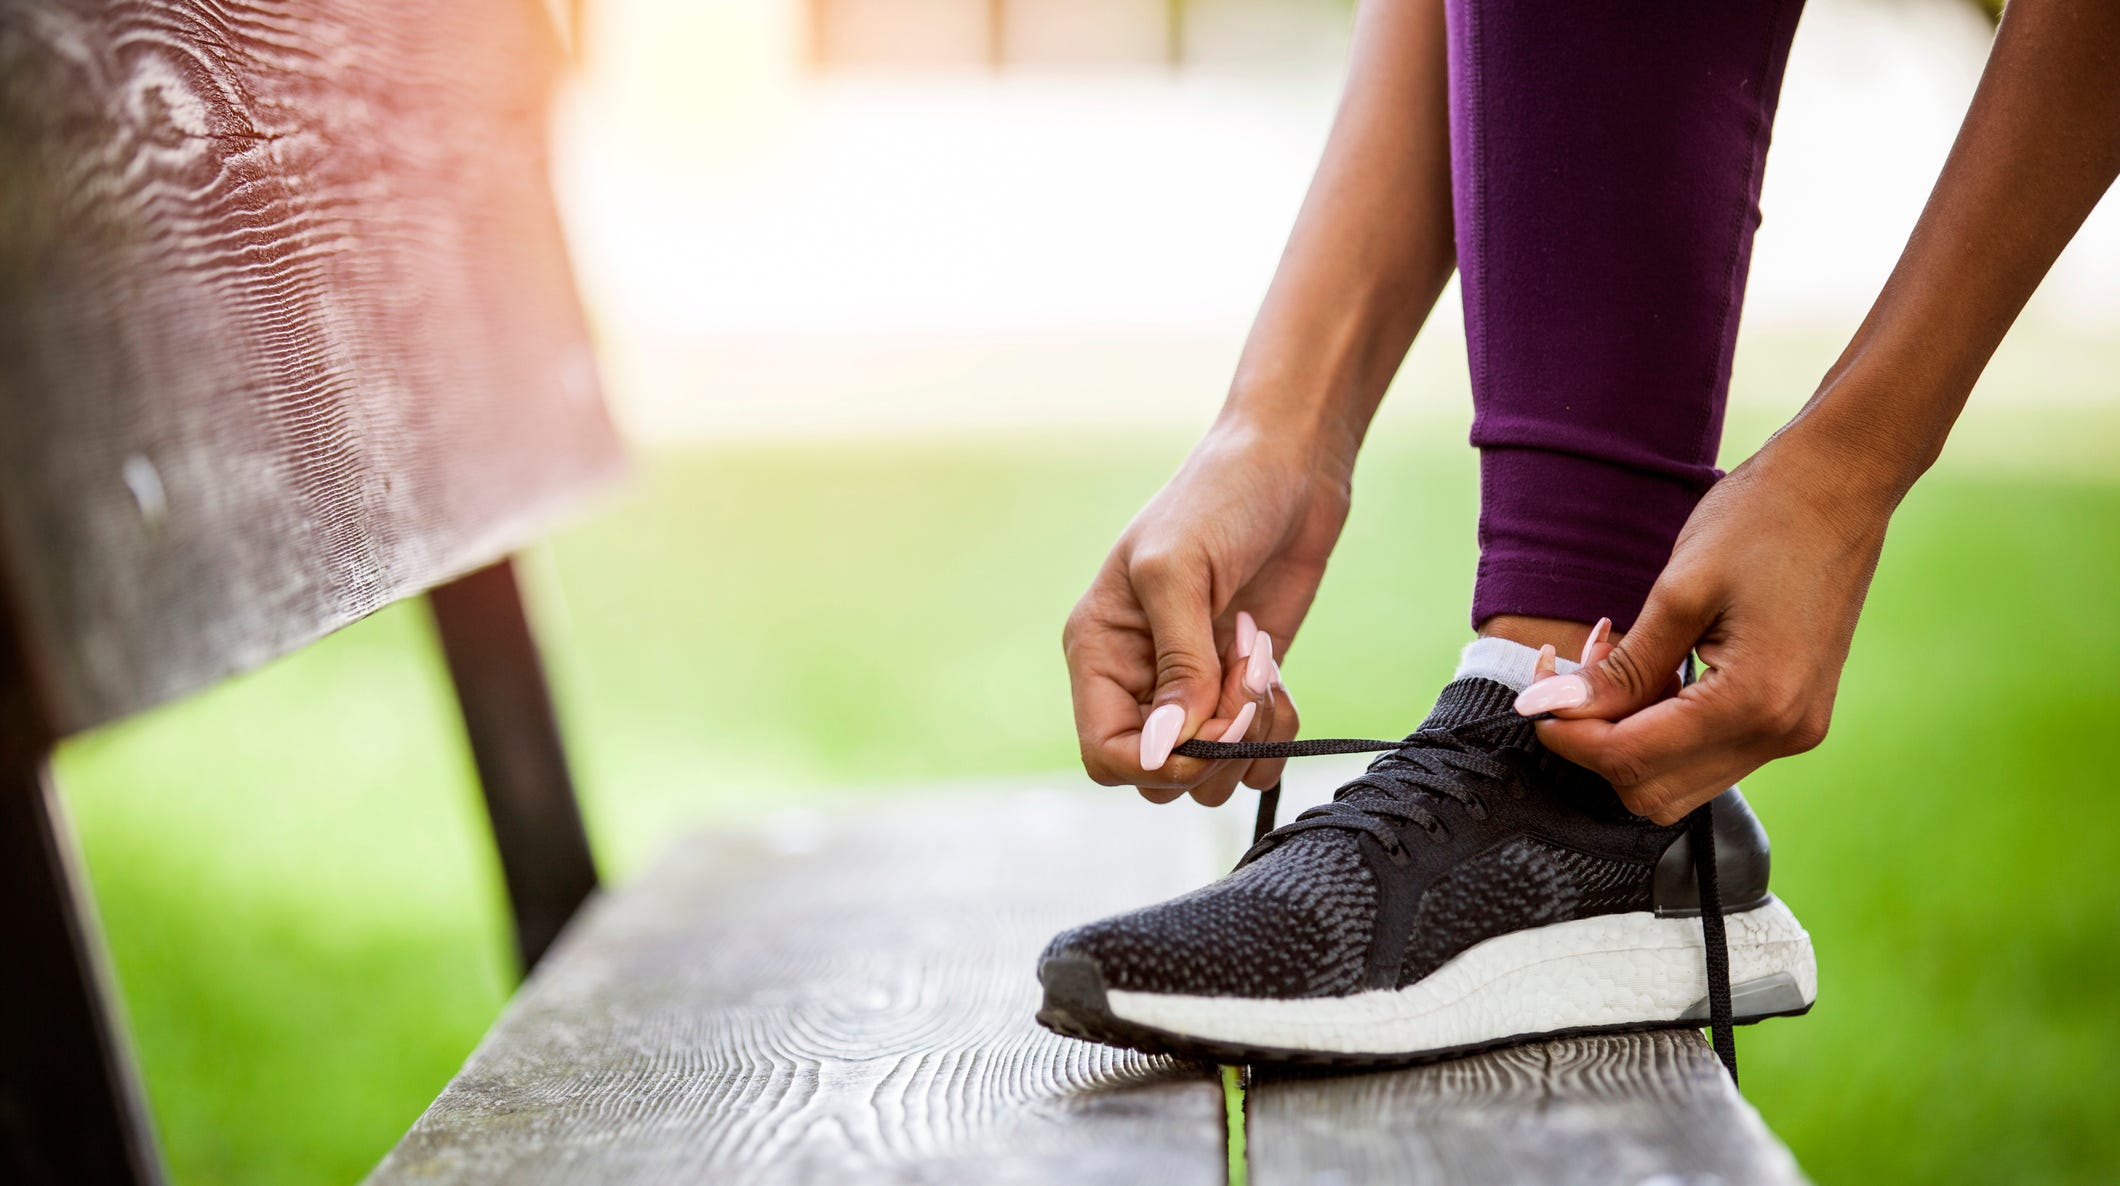 Though they may look similar, common bunions and bunions with arthritis are very different conditions with vastly different medical interventions.